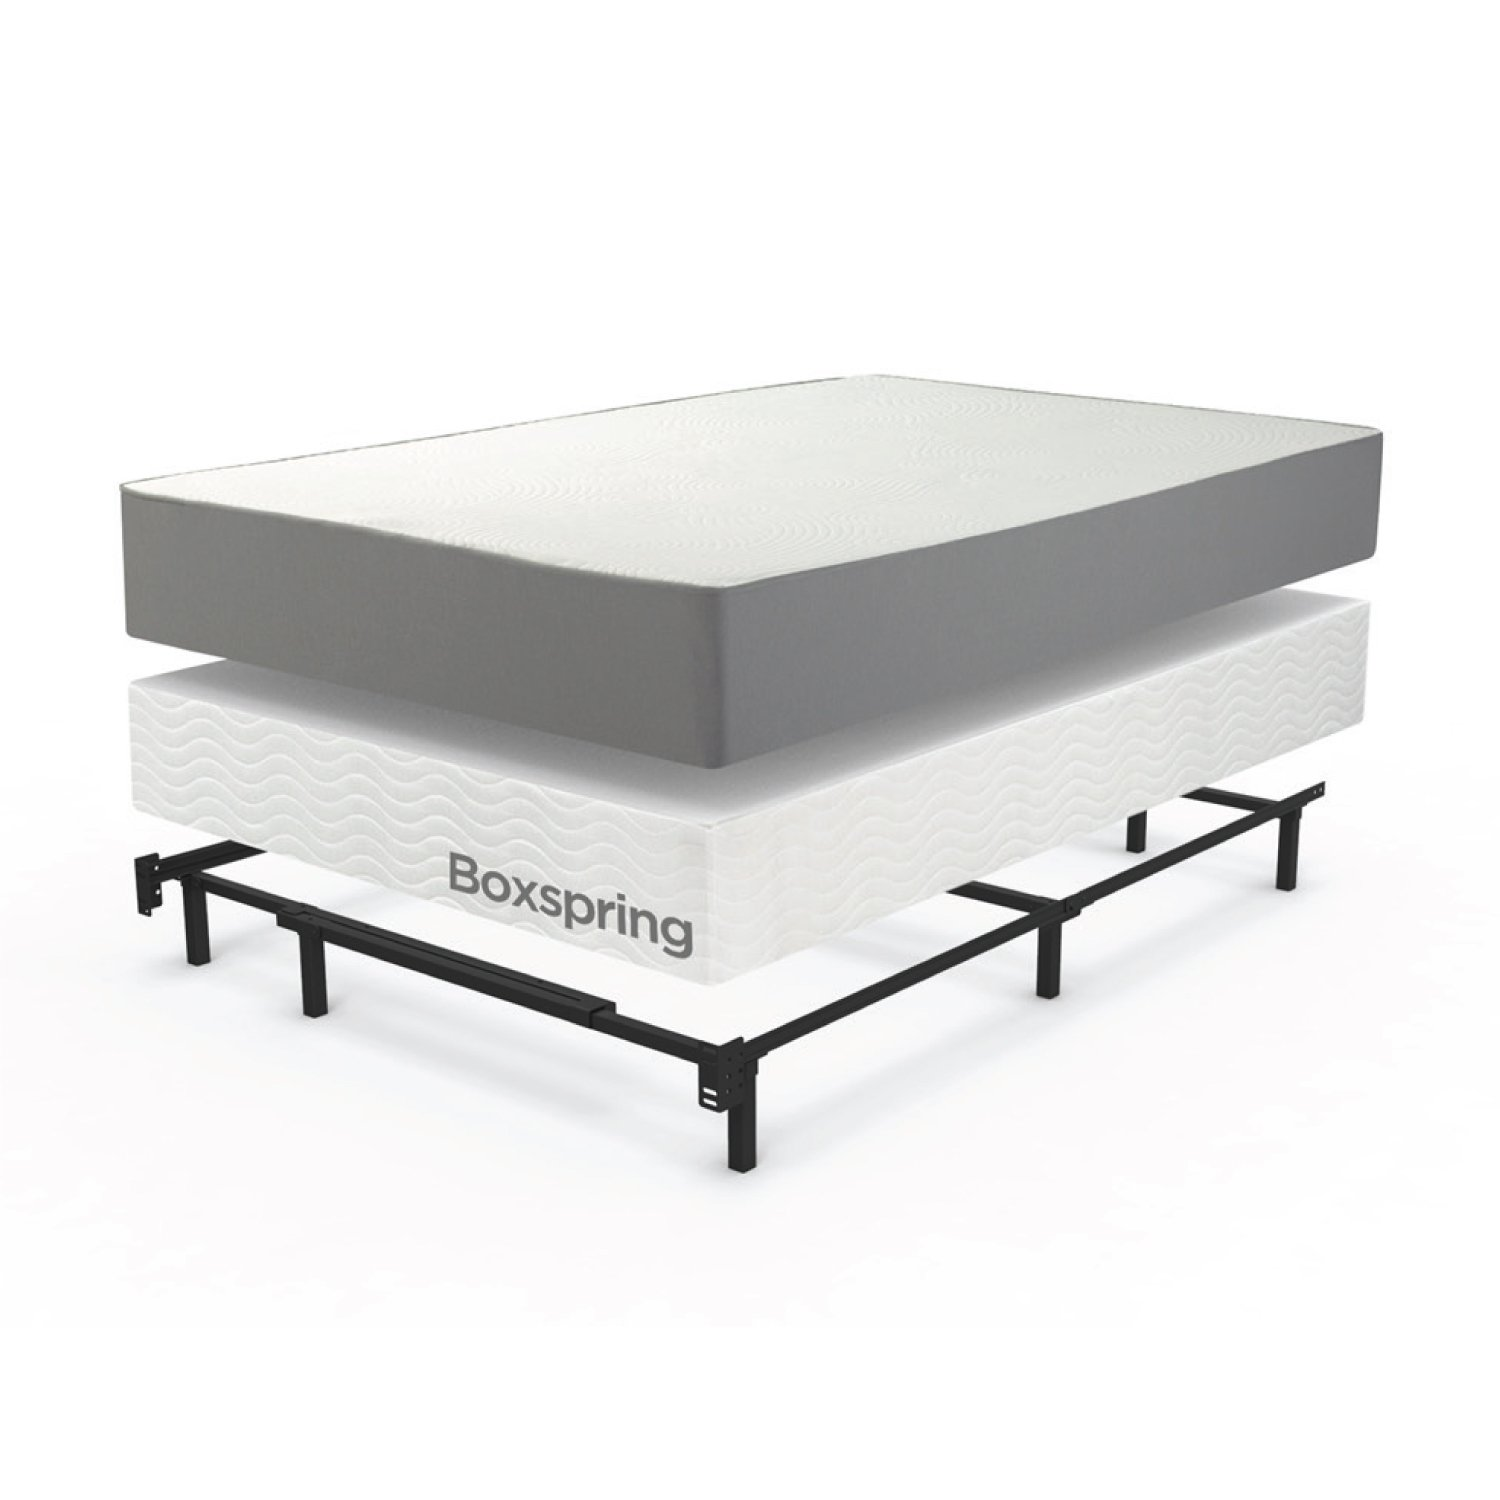 when bed tall boxspring a home box using platform city edited big for to how convert mattress little and super spring house